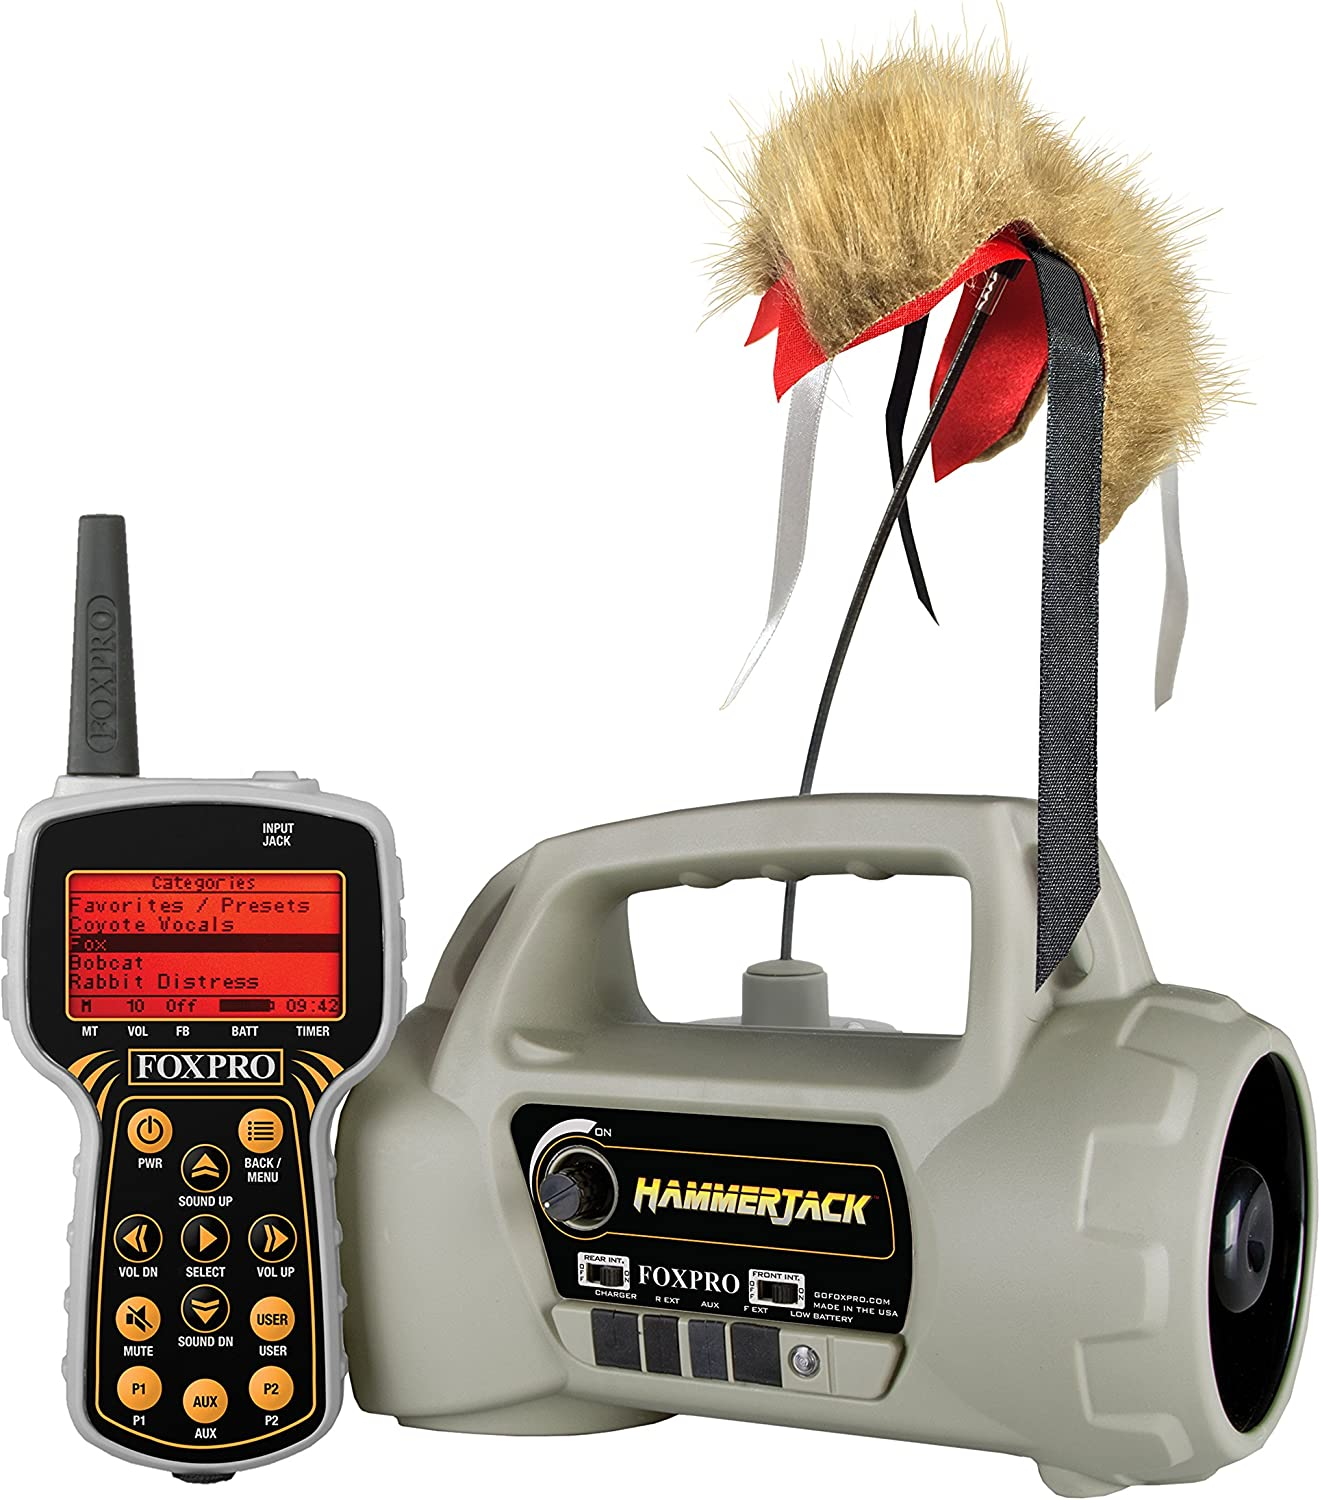 New Foxpro Hammer Jack Predator Call and Lure Package